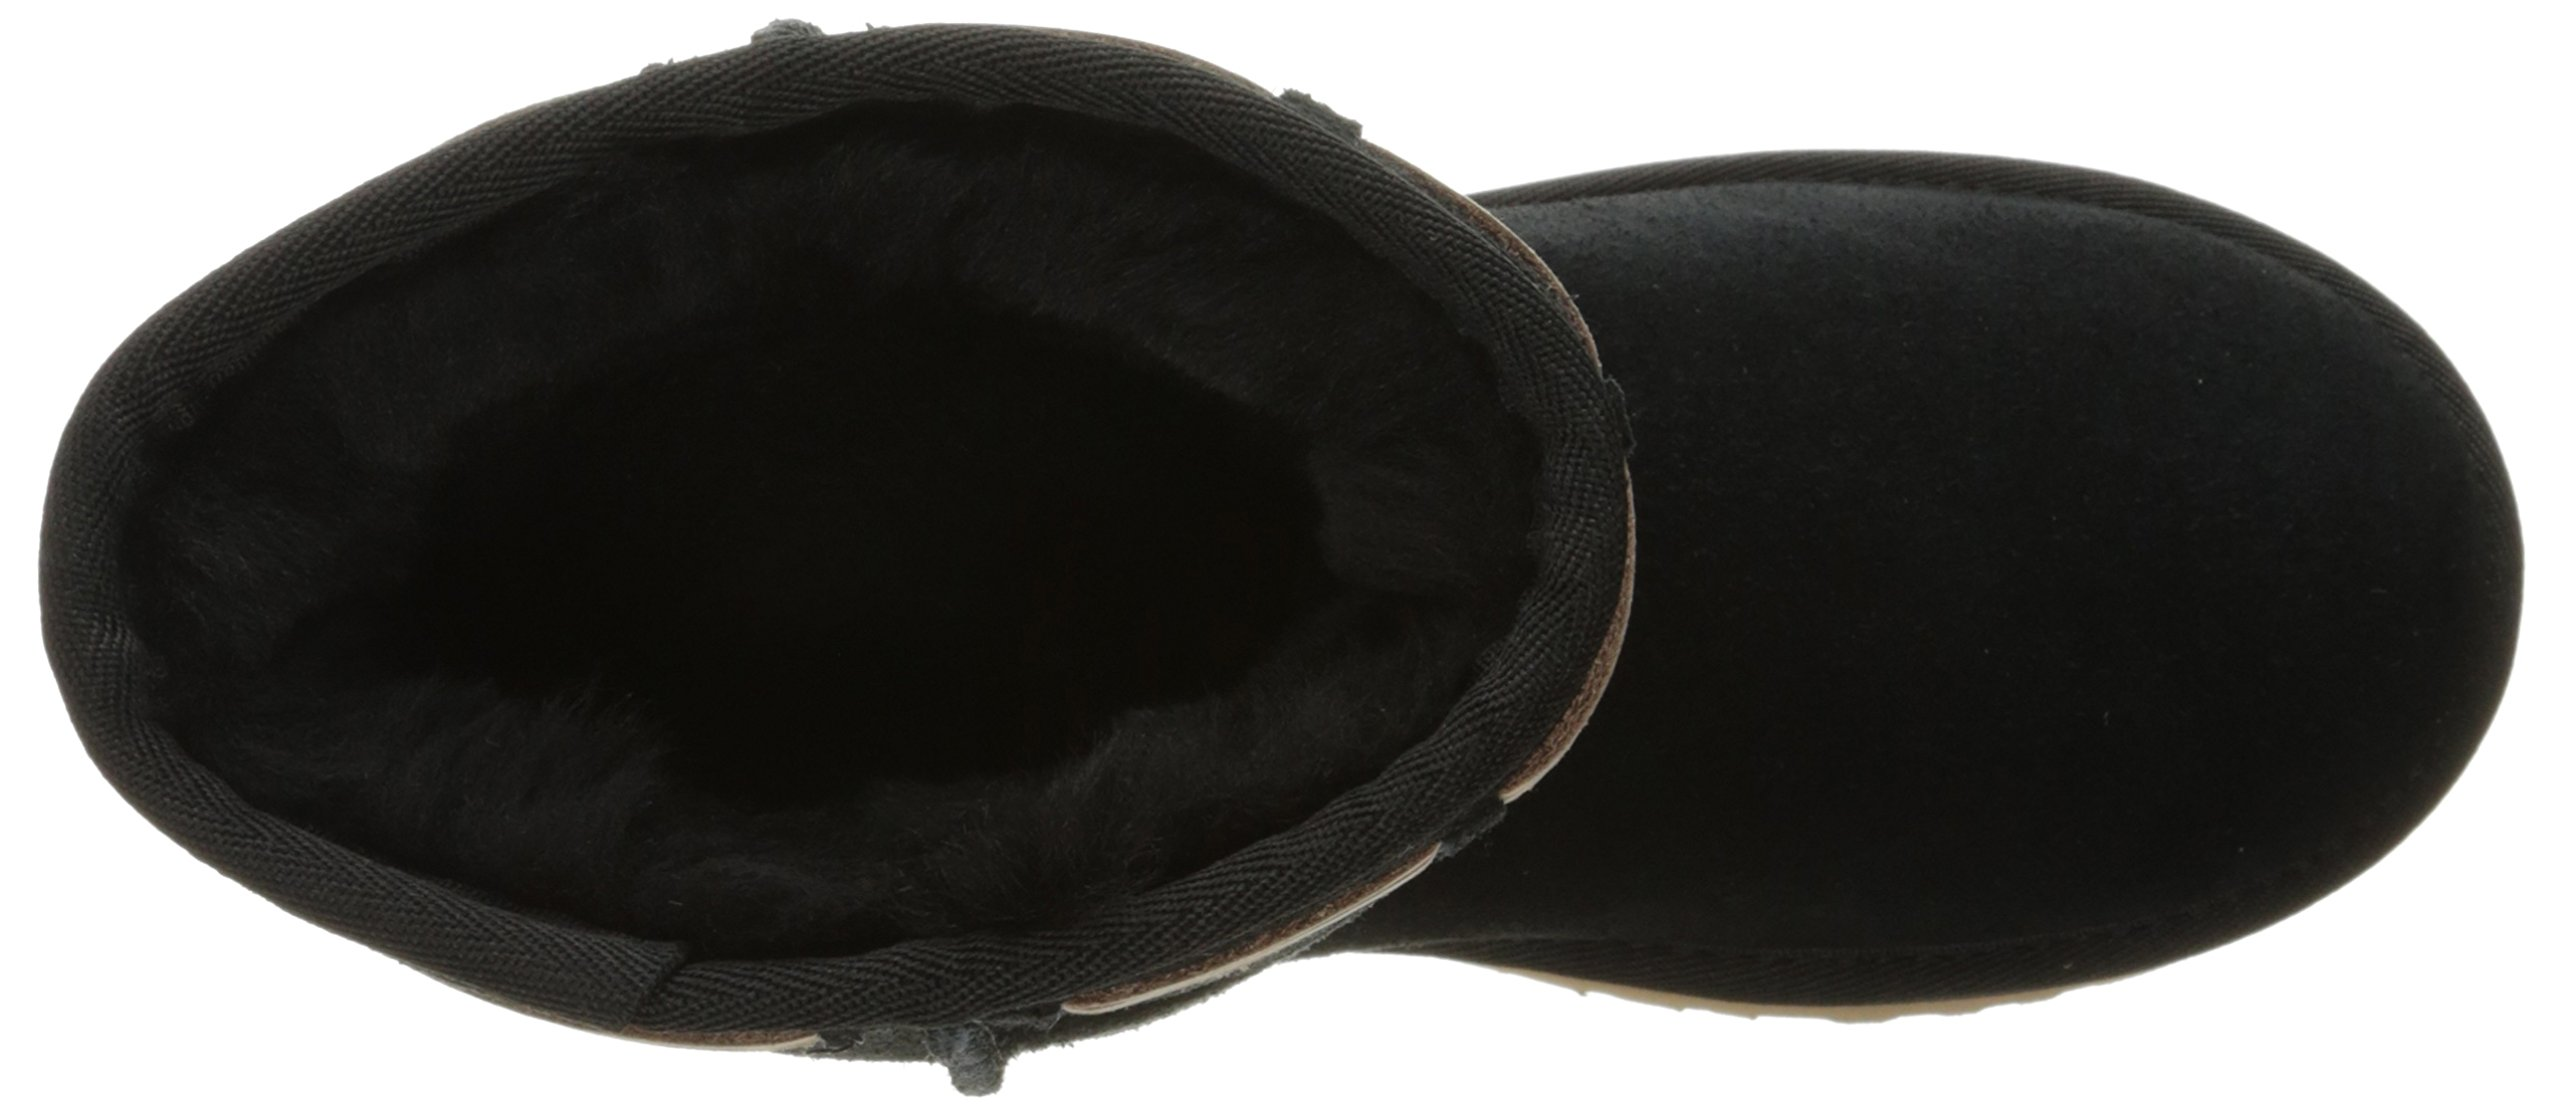 UGG Kids' K Classic Short Carranza Pull-on Boot, Black, 2 M US Little Kid by UGG (Image #8)